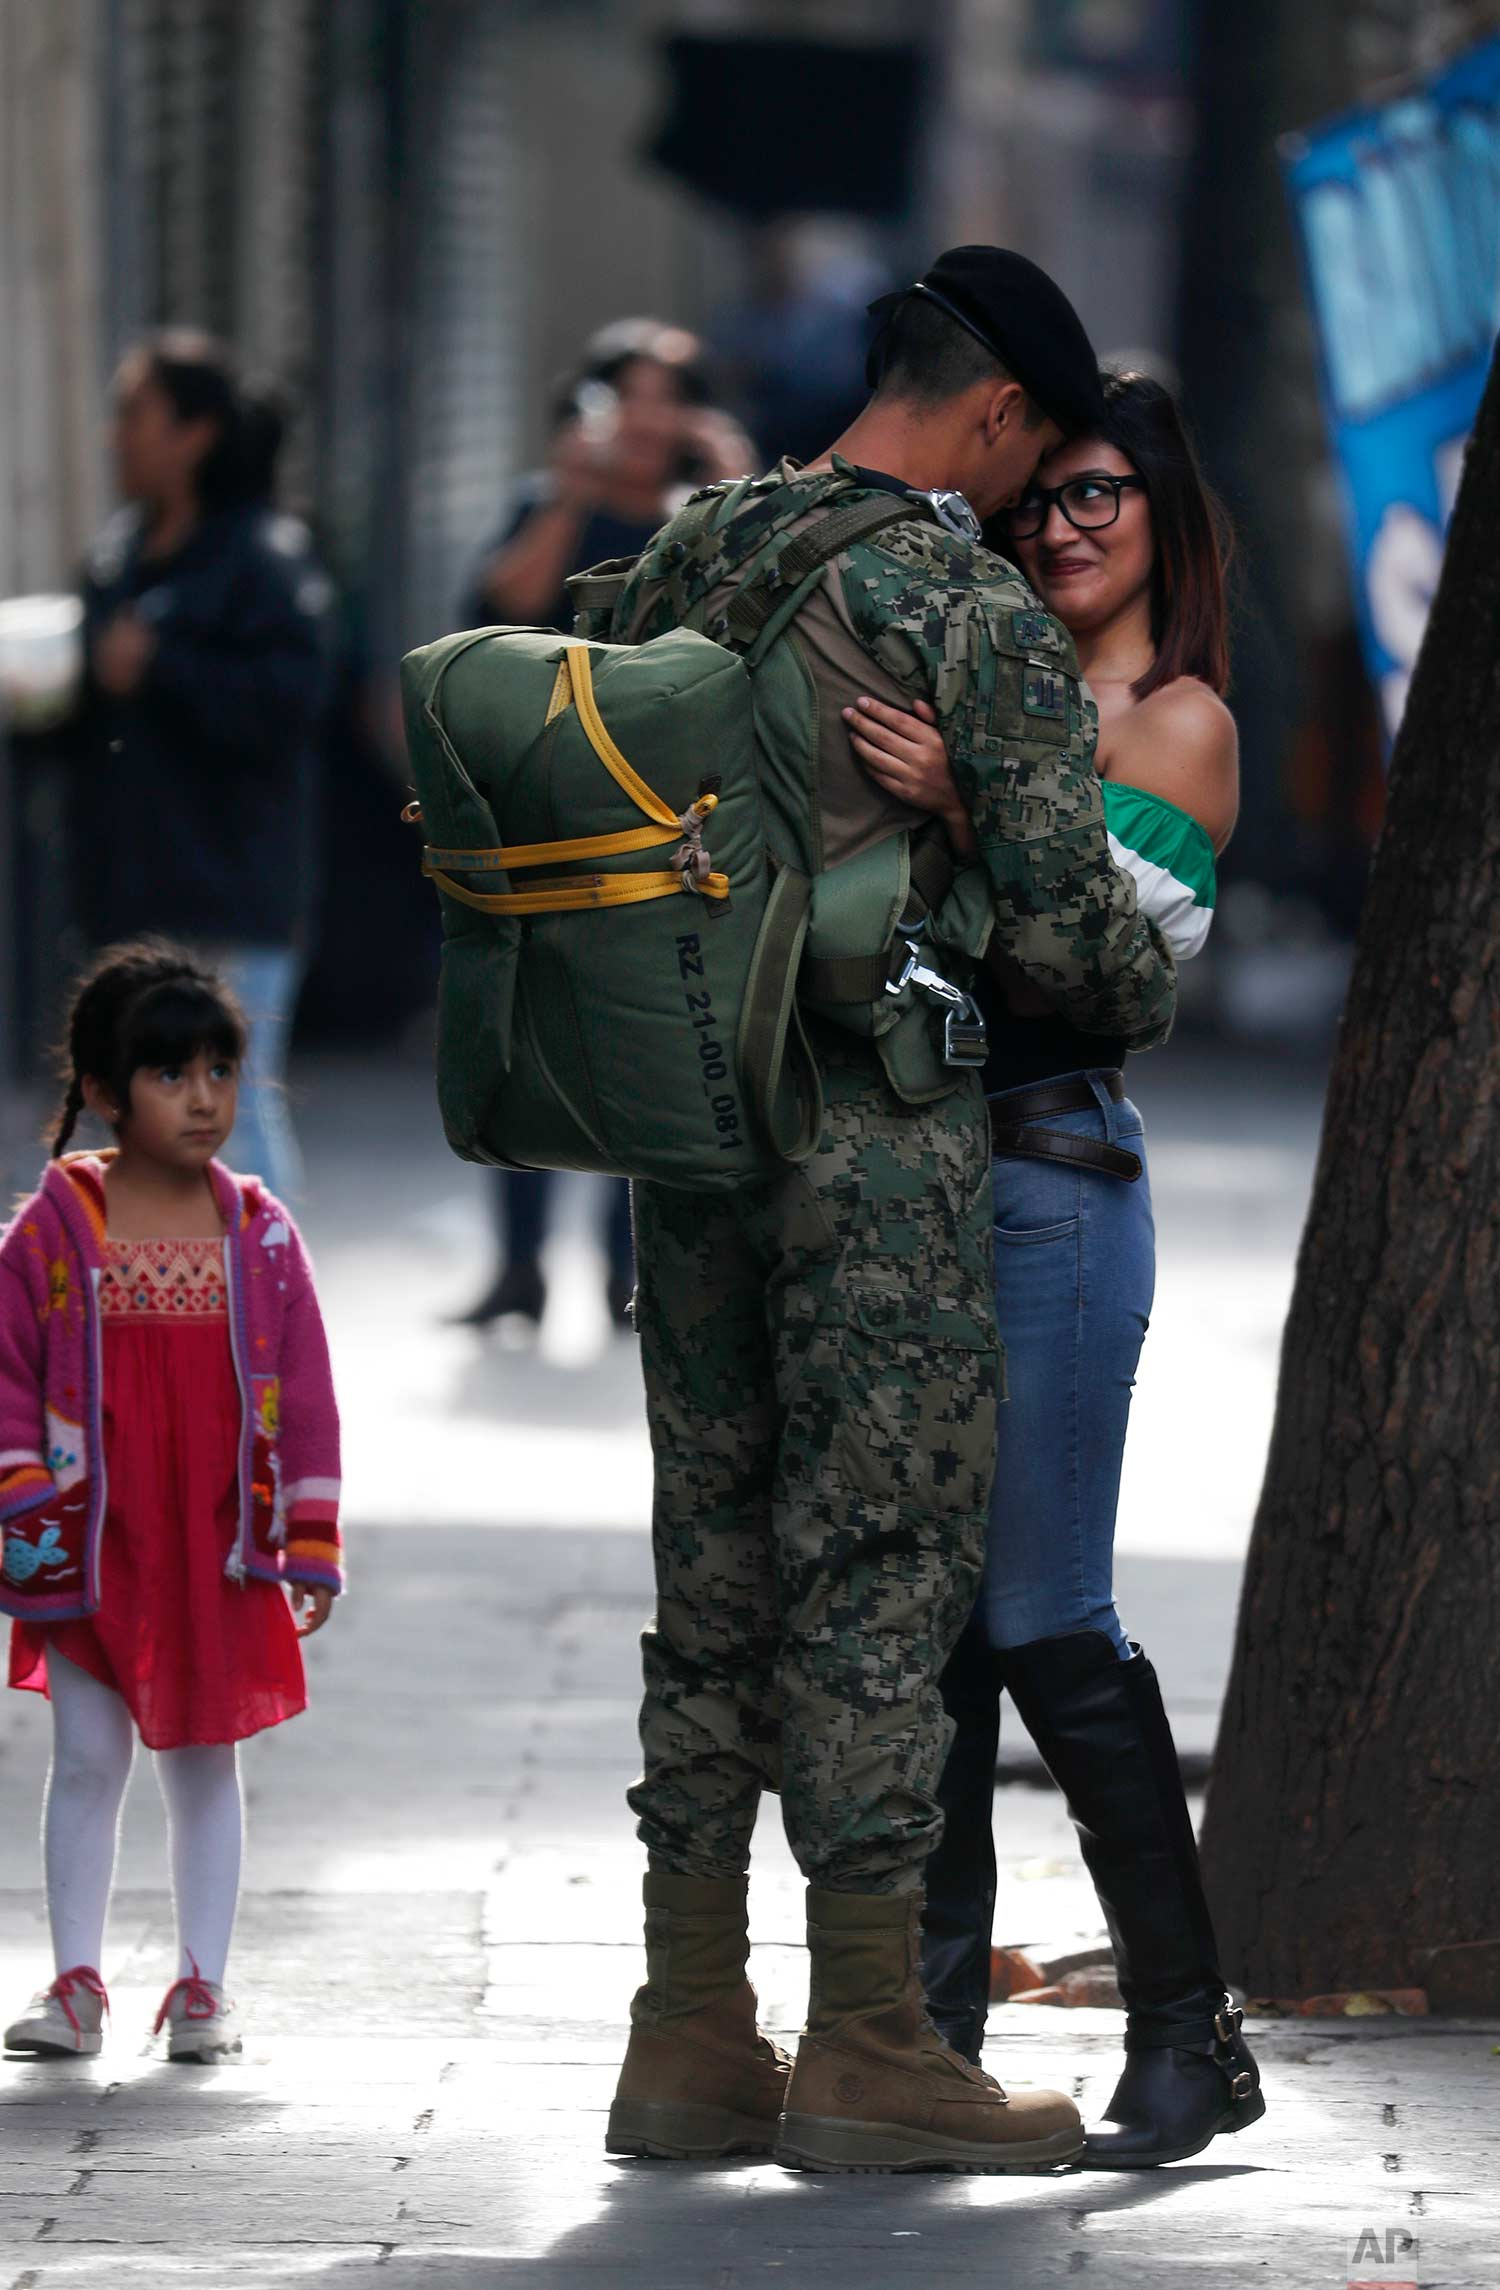 In this Sept. 16, 2017. photo, a soldier embraces a woman before the start of the annual Independence Day military parade in Mexico City's main square, known as the Zocalo. (AP Photo/Eduardo Verdugo)